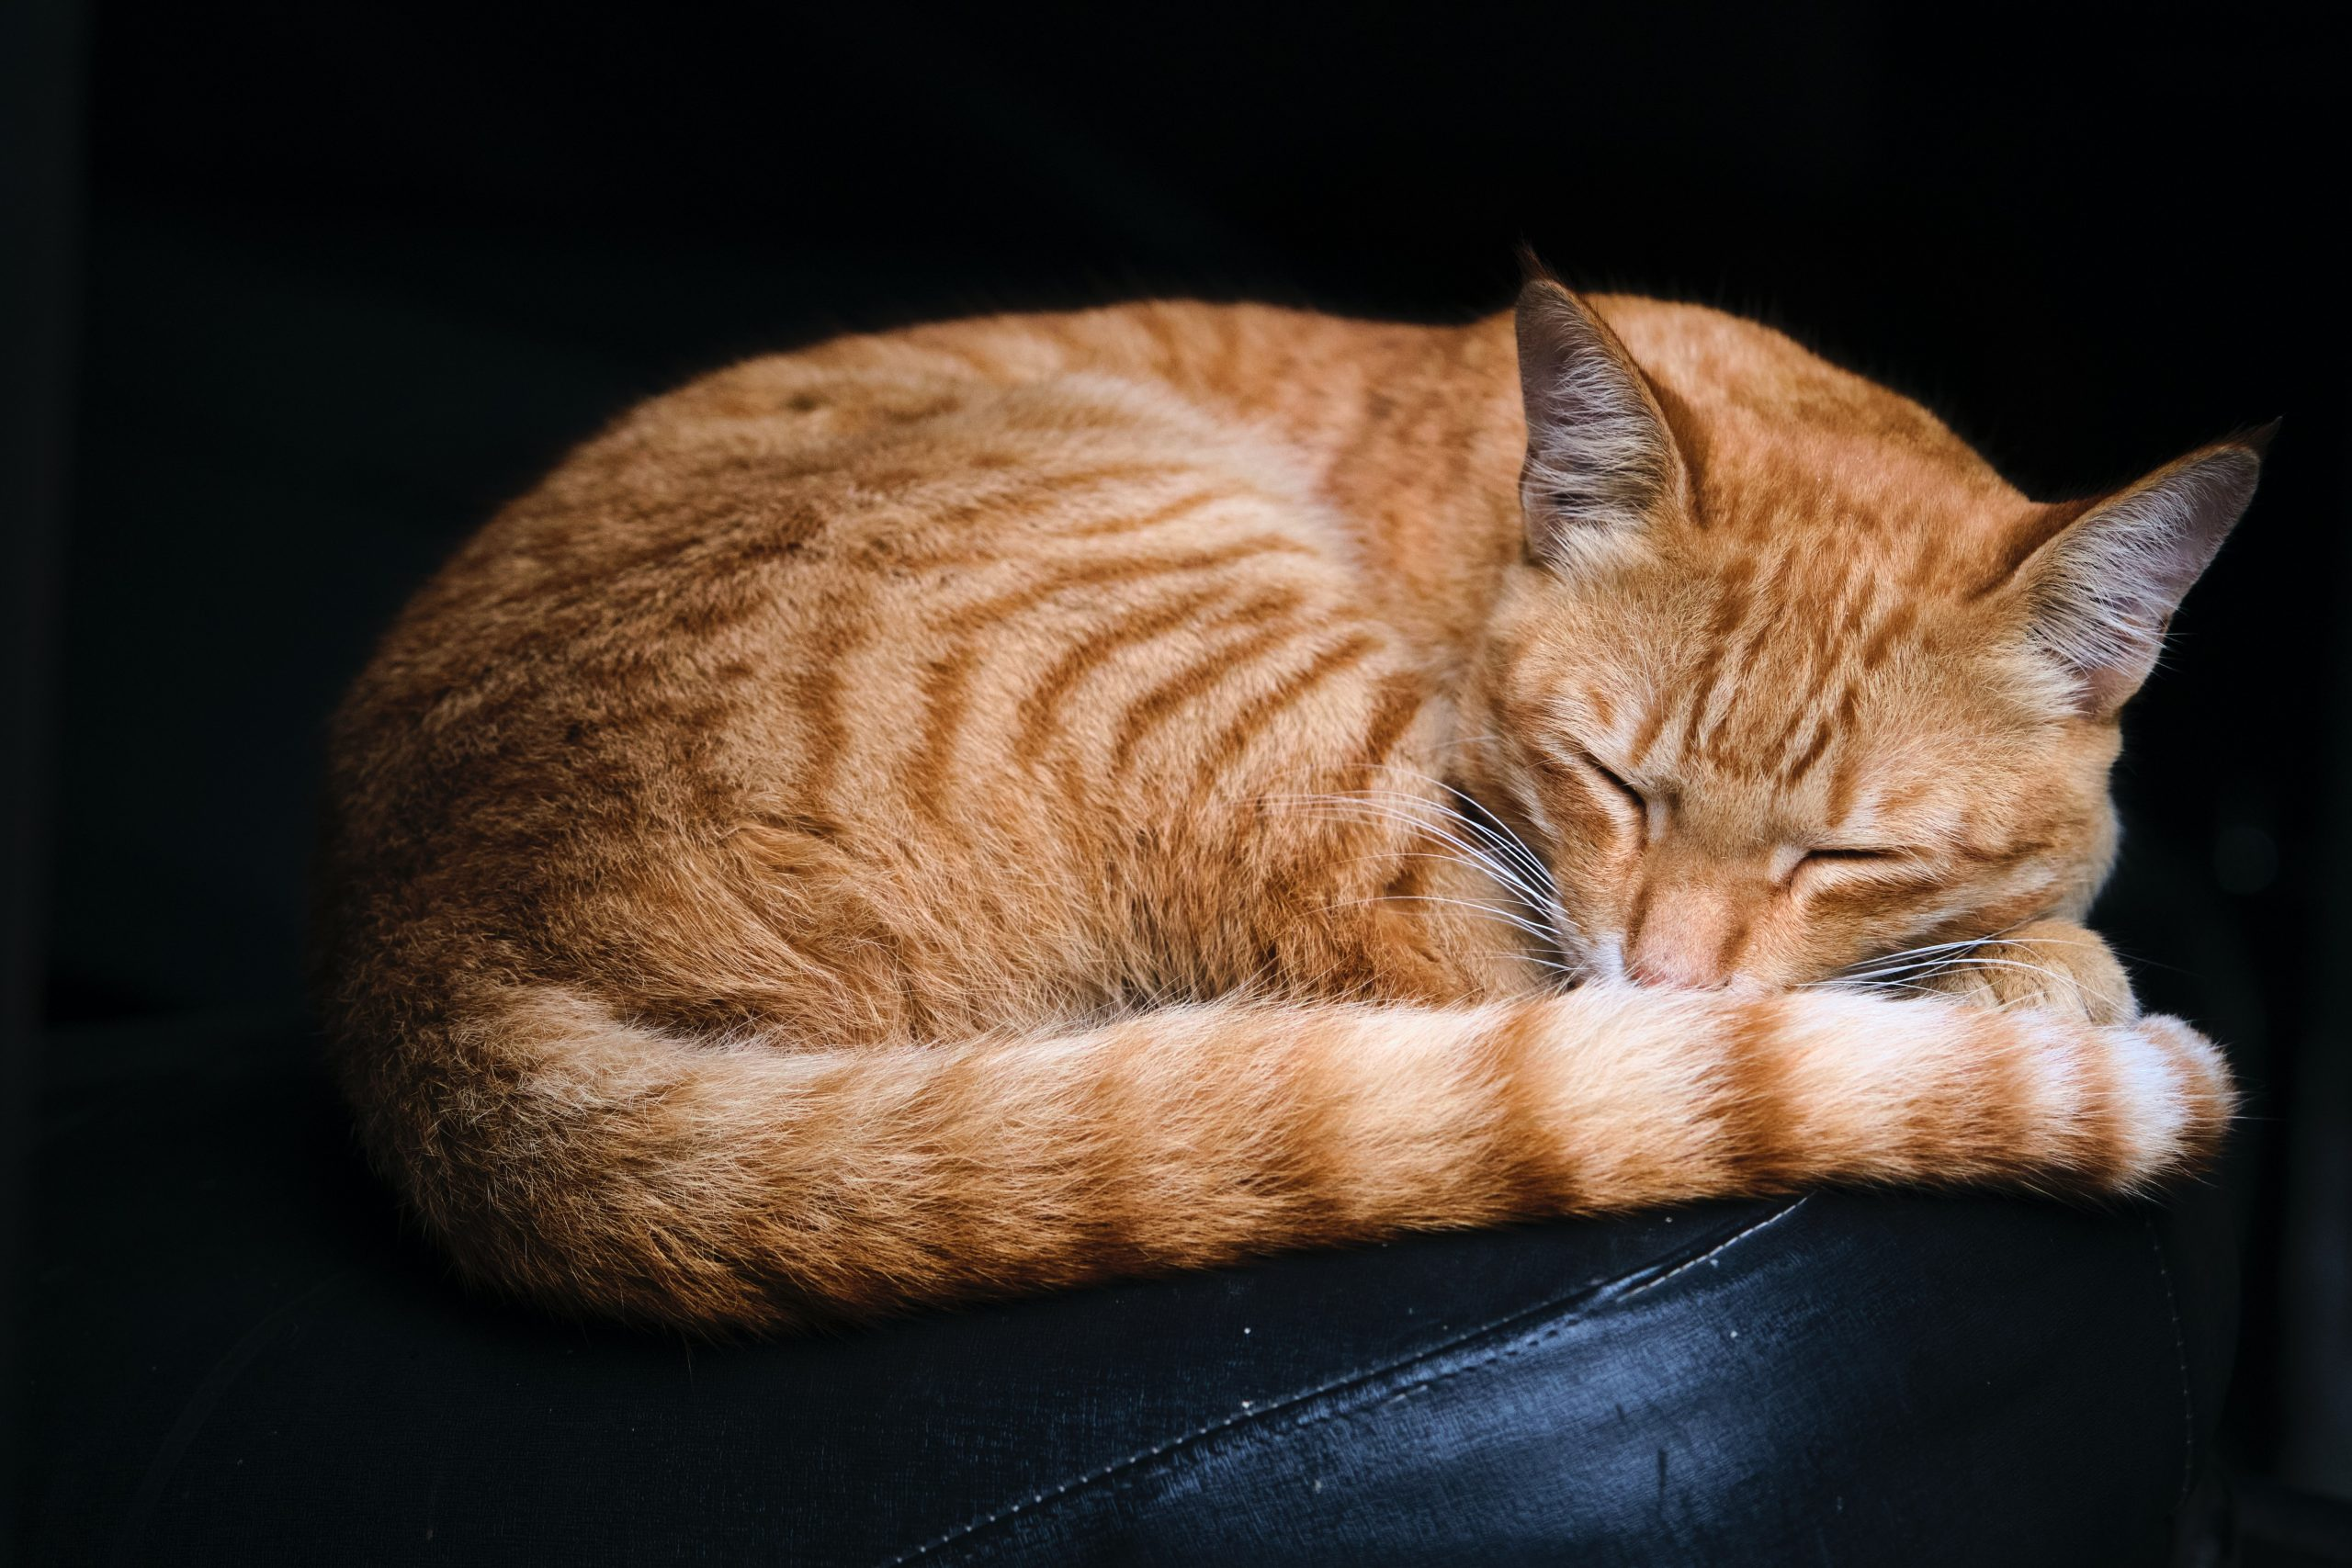 Would cats still sleep all day if they had a concept of time?